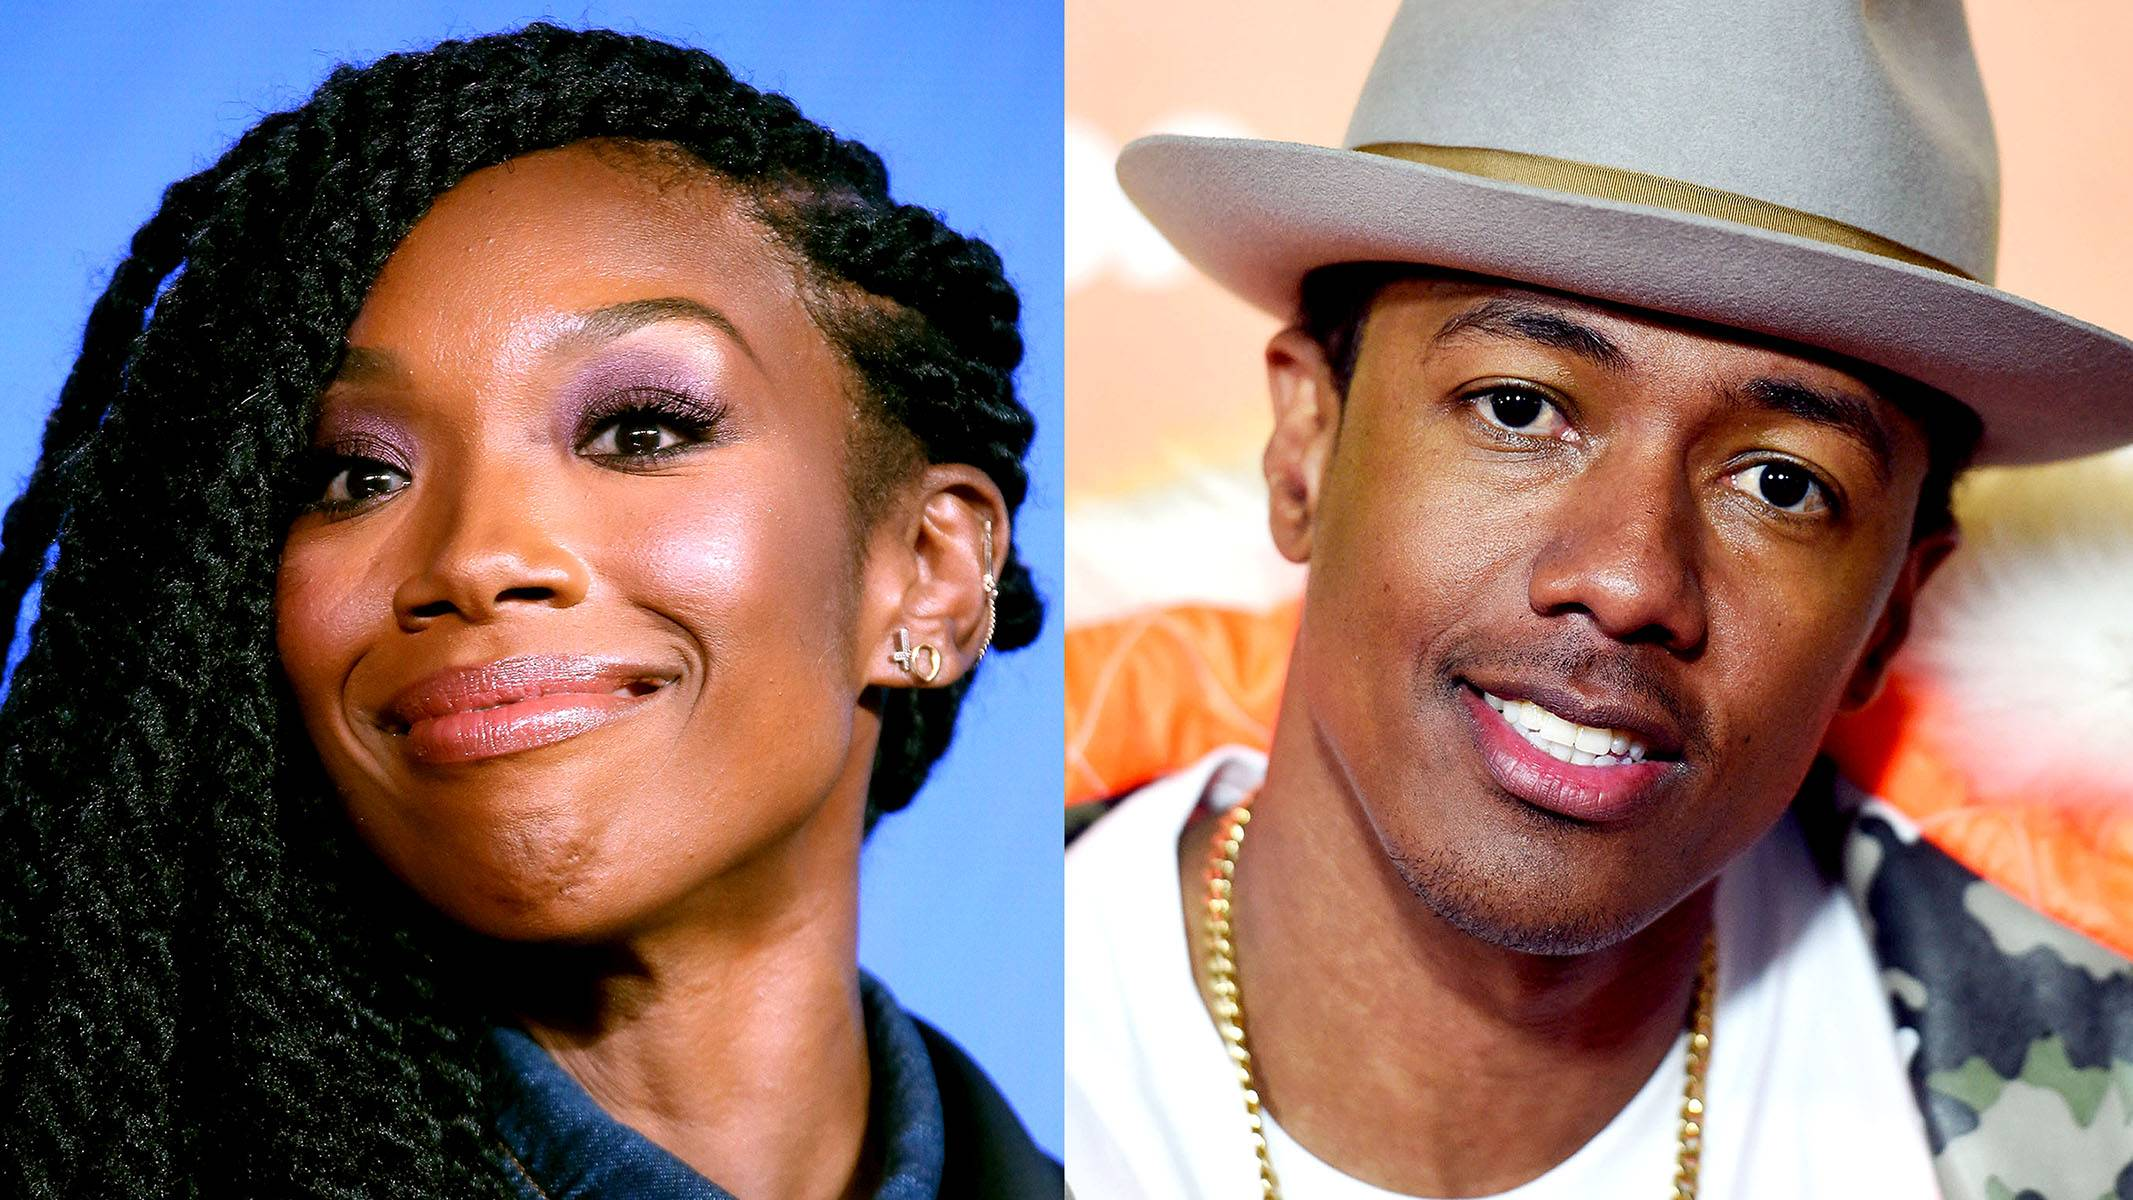 011416-Celebs-Celebrity-Quotes-of-the-Week-Brandy-Nick-Cannon.jpg